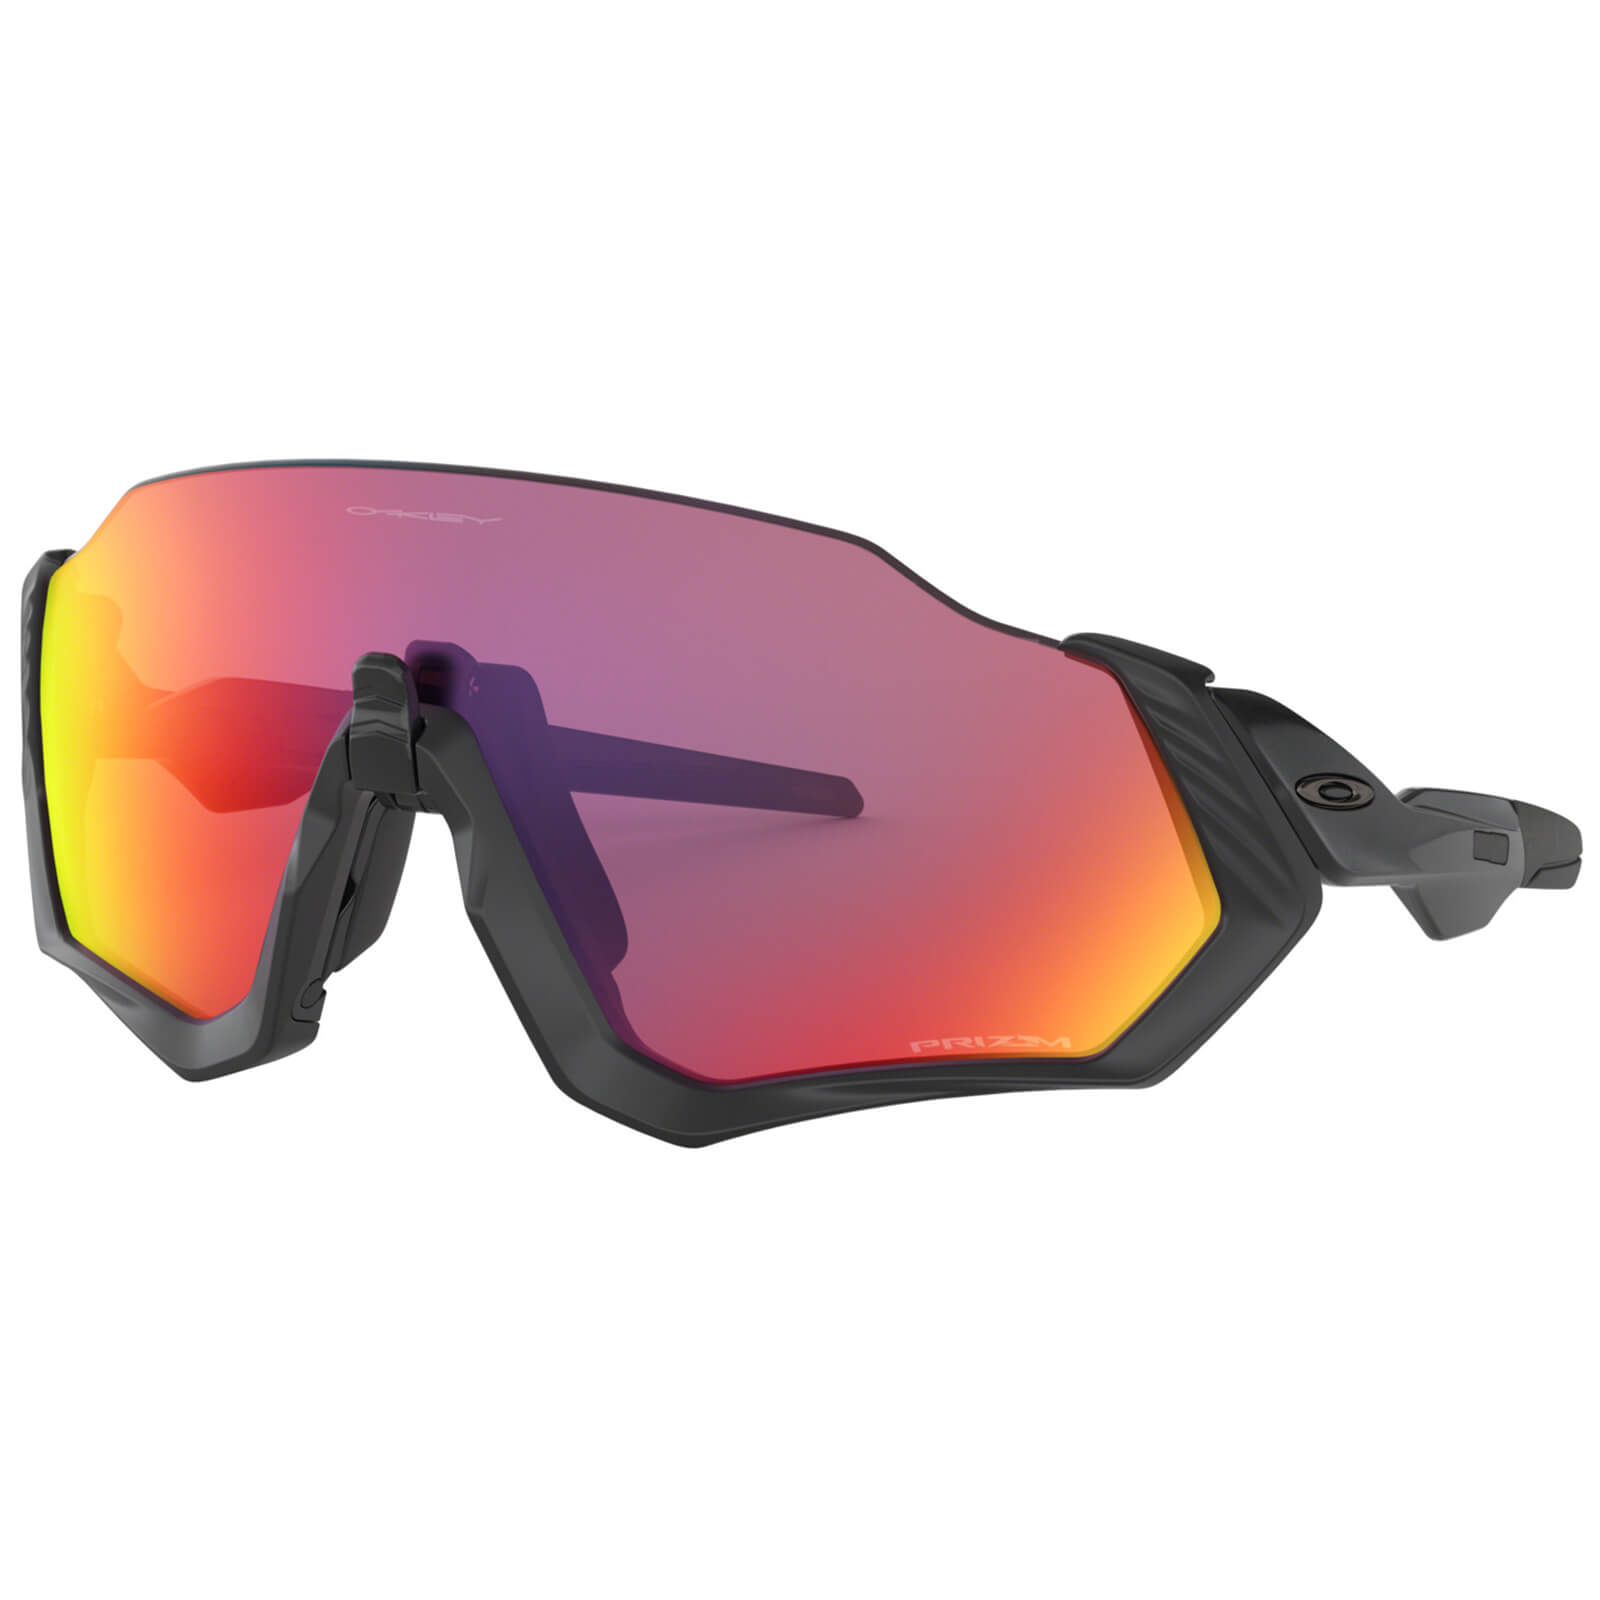 cb5953ccf1cd9 Oakley Flight Jacket Sunglasses - Polished Black Prizm Road ...